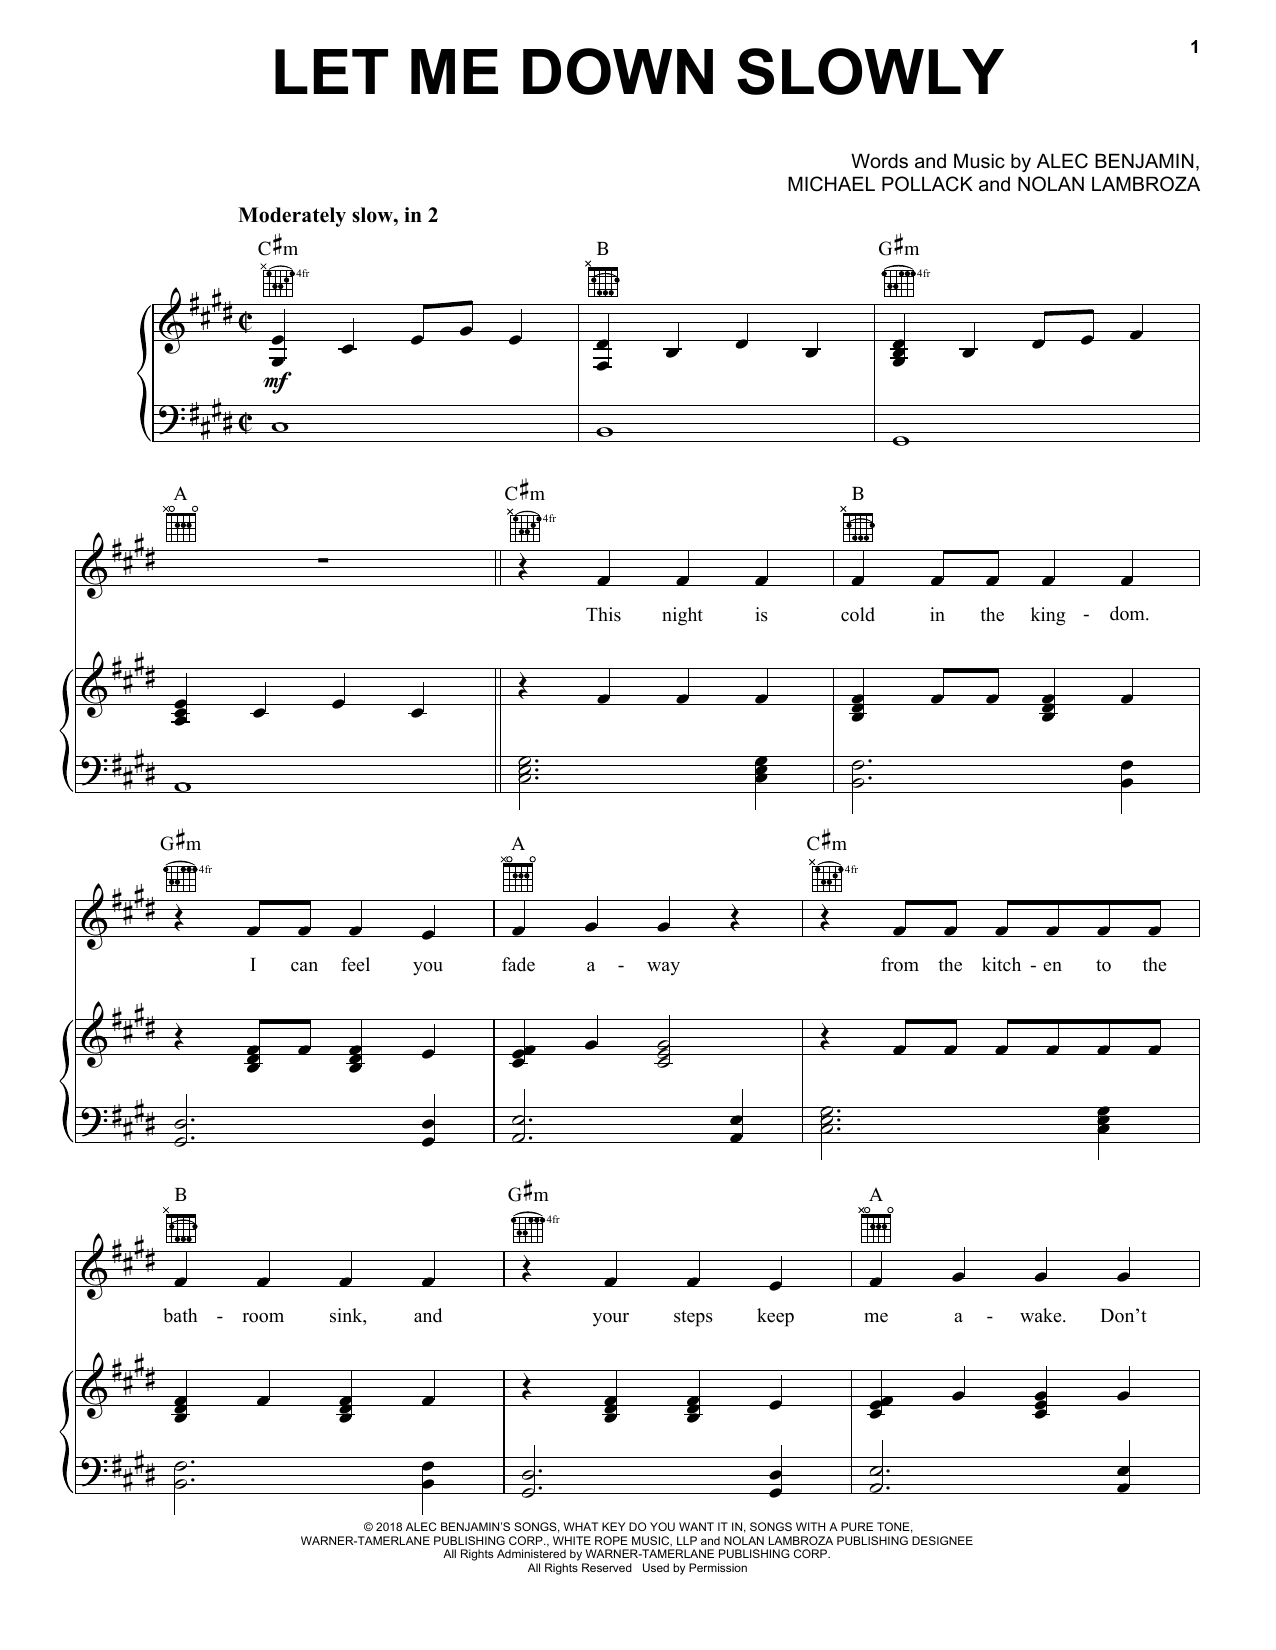 Alec Benjamin Let Me Down Slowly sheet music notes and chords. Download Printable PDF.